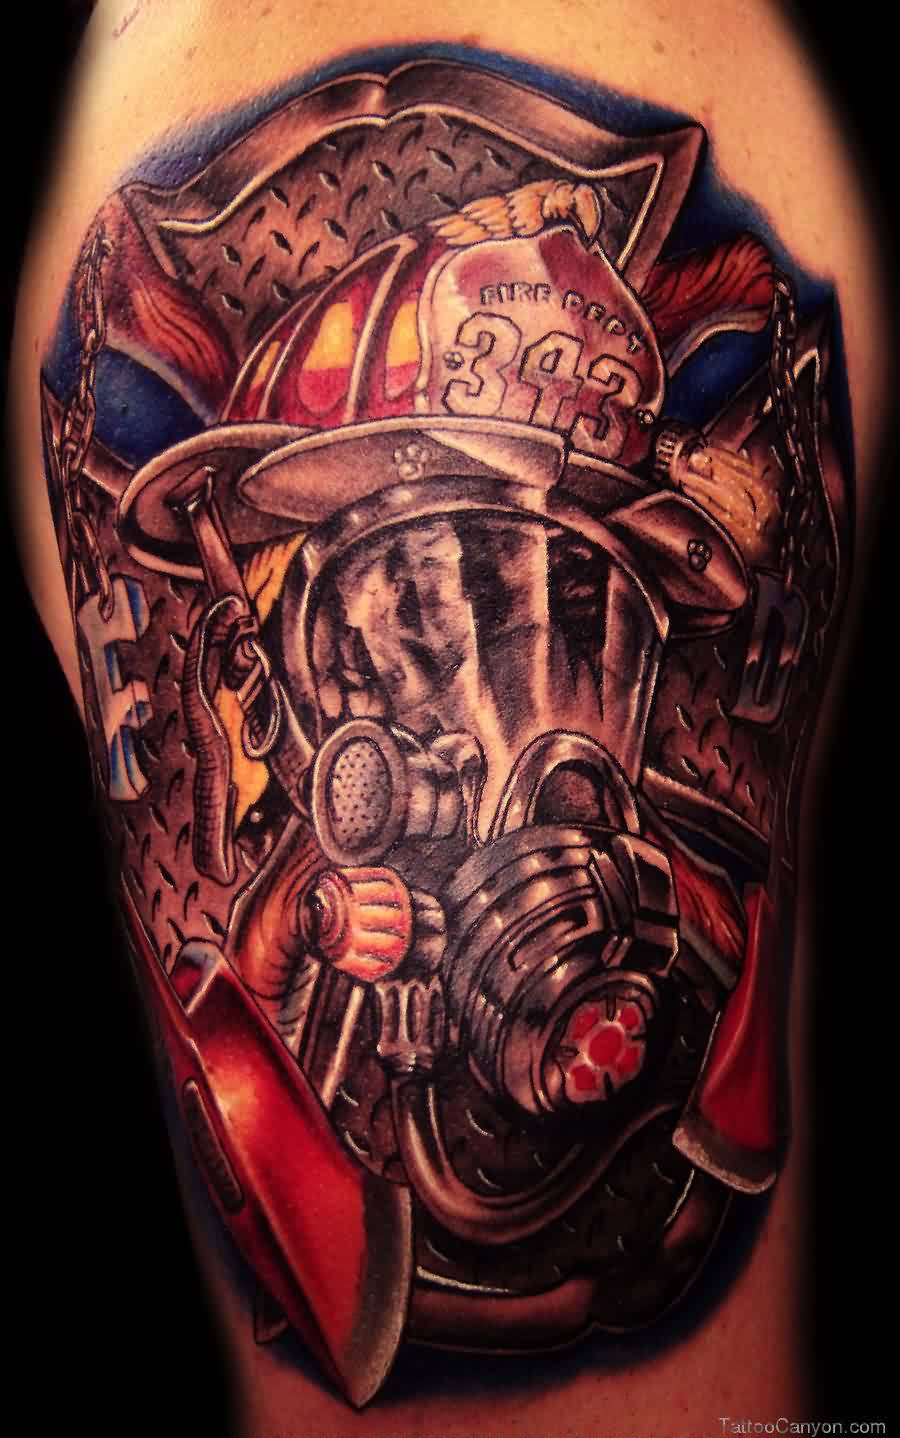 Great Firefighter Helmet Tattoo